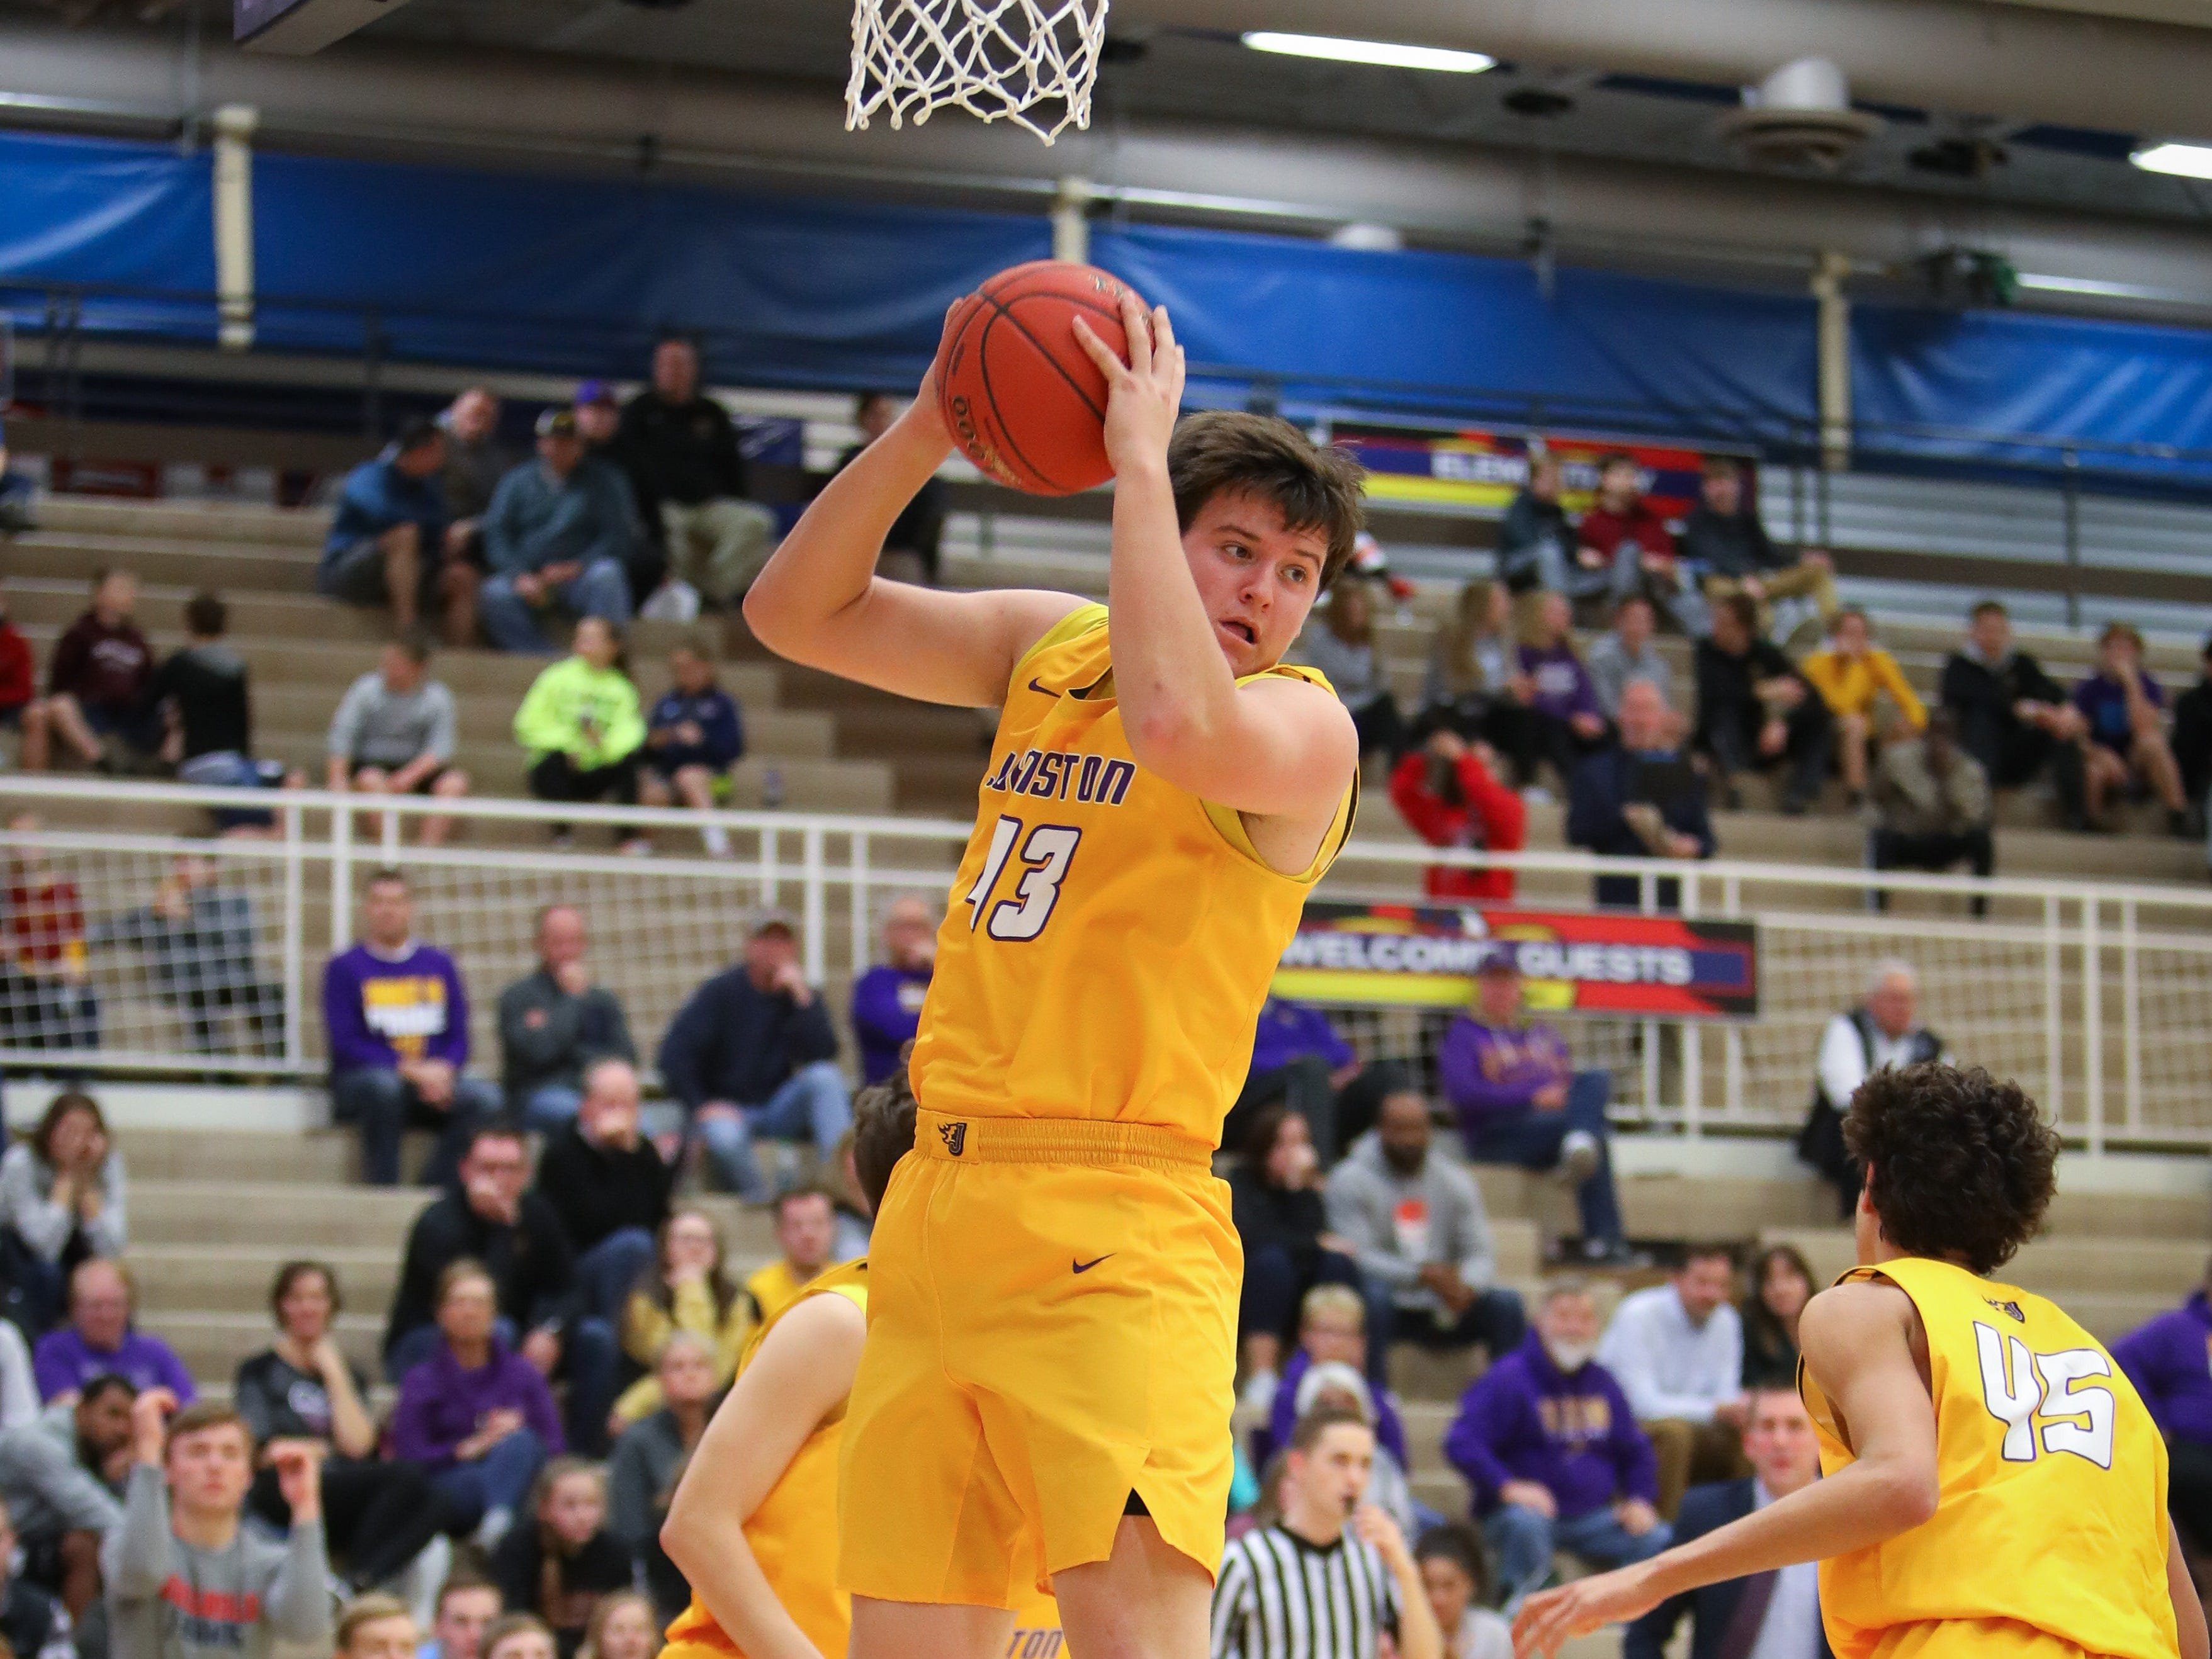 Johnston senior Peyton Williams comes down with a rebound during a boys high school basketball game between the Johnston Dragons and the Urbandale J-Hawks at Urbandale High School on Dec. 18, 2018 in Urbandale, Iowa.